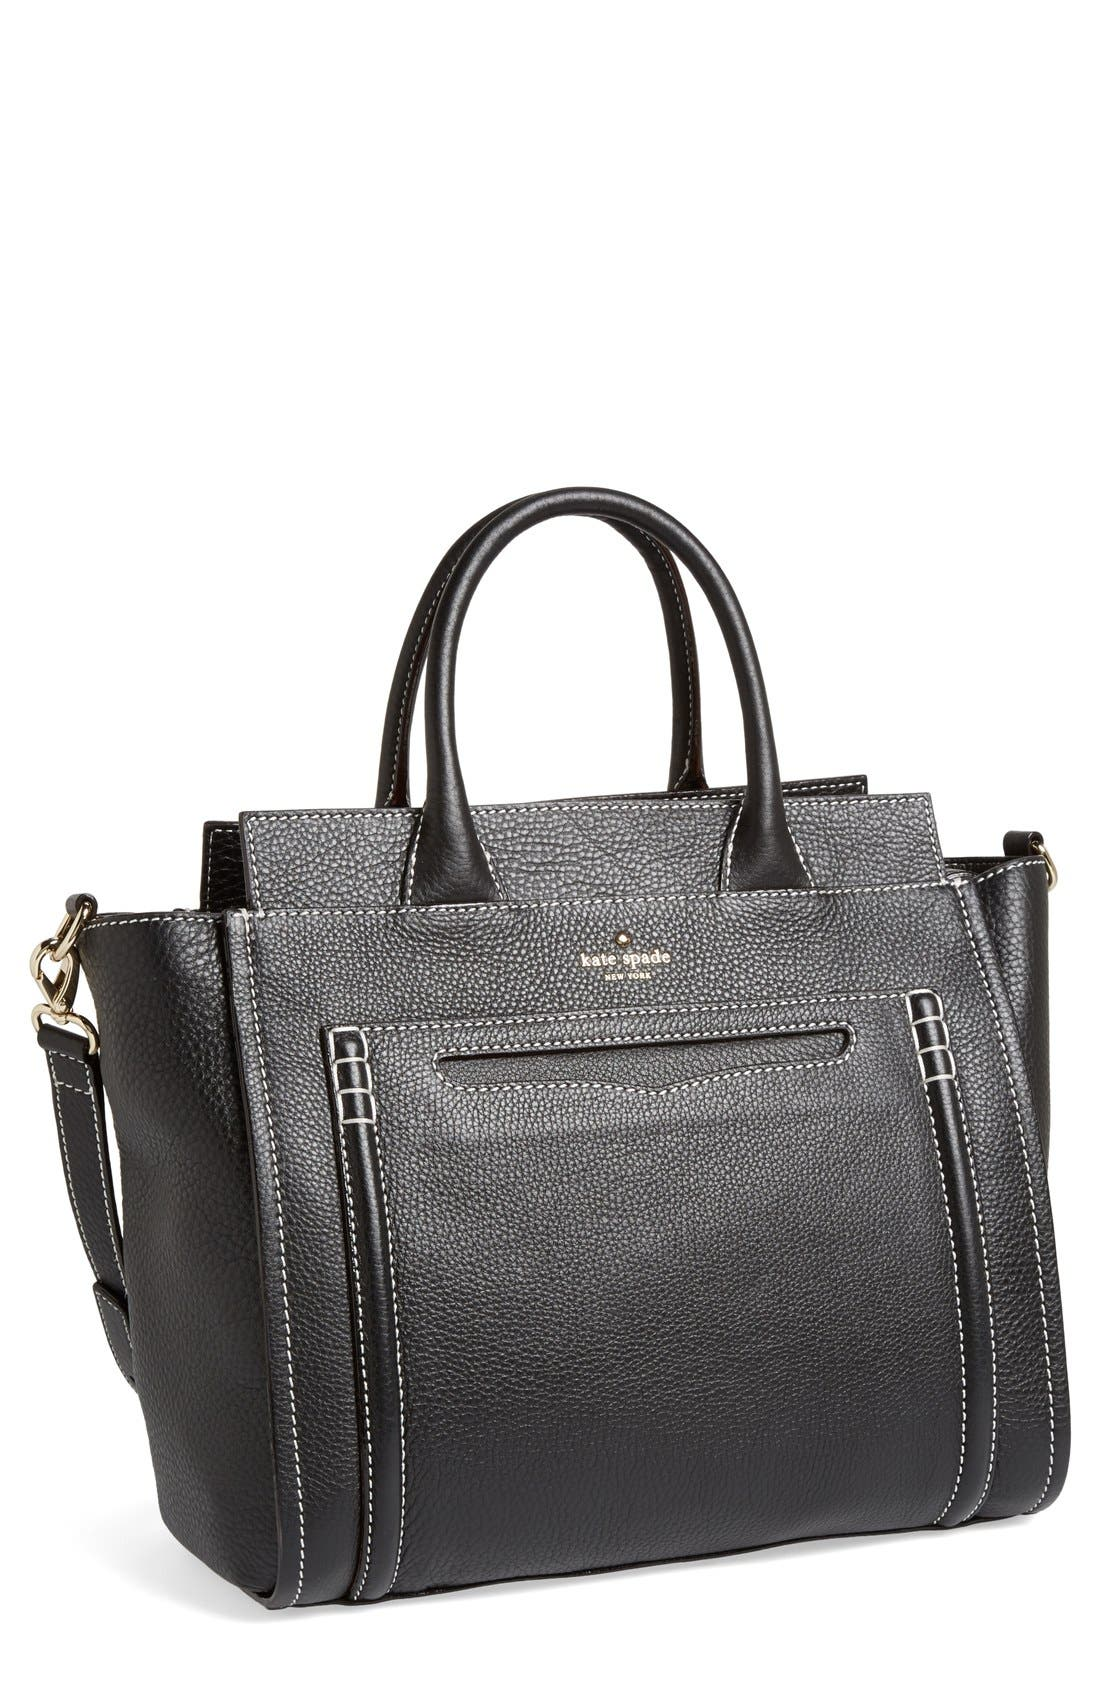 Alternate Image 1 Selected - kate spade new york 'claremont drive - marcella' shoulder tote